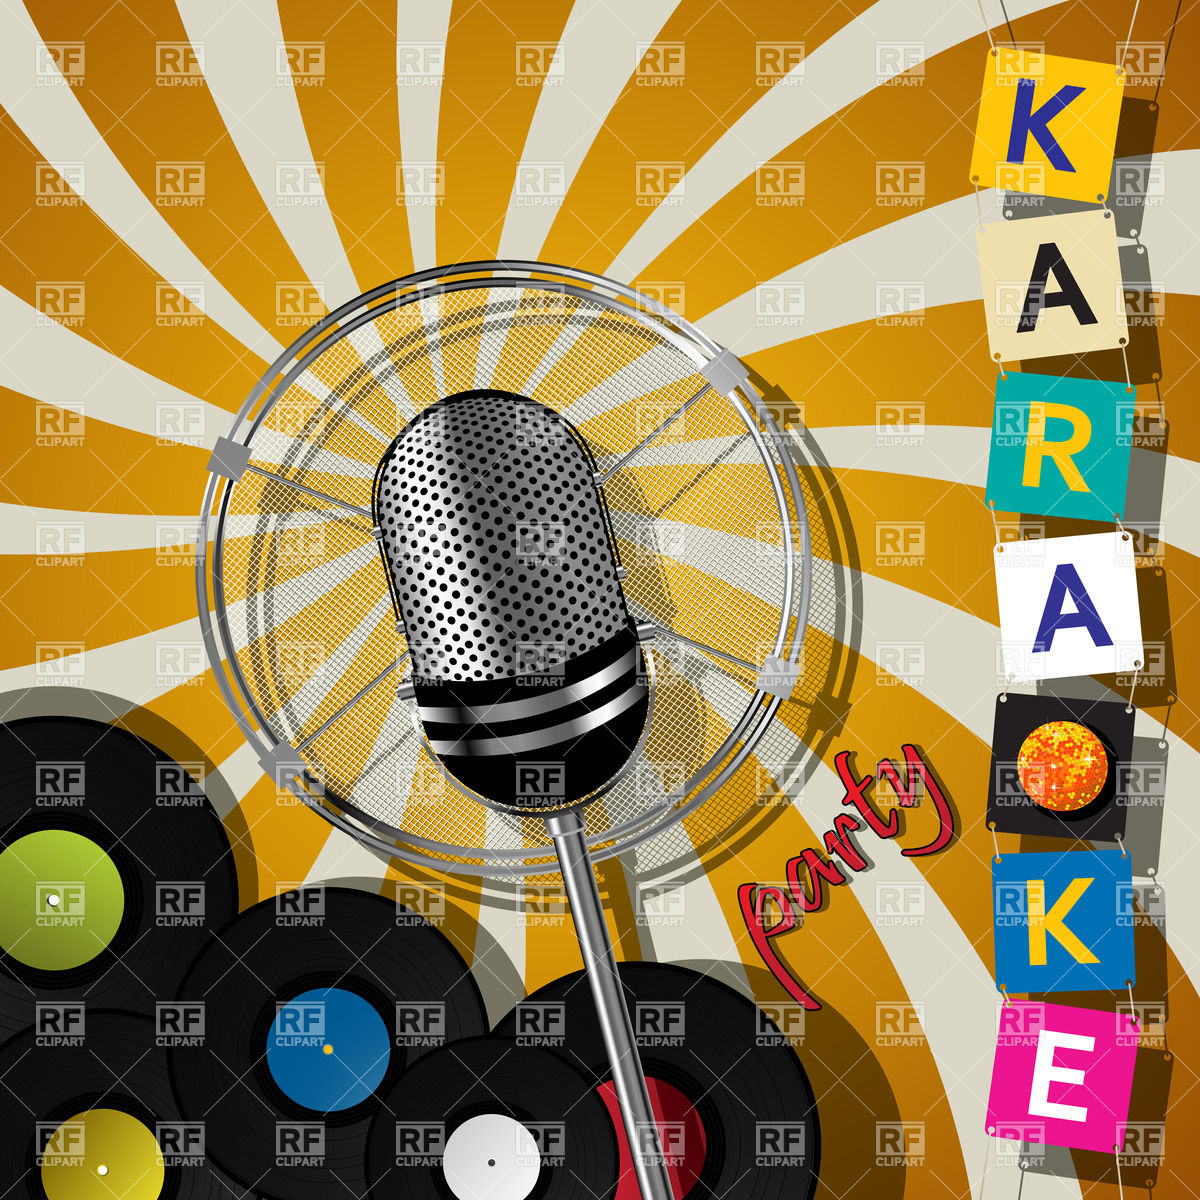 Karaoke clipart free download vector royalty free library Karaoke clipart free download 6 » Clipart Station vector royalty free library